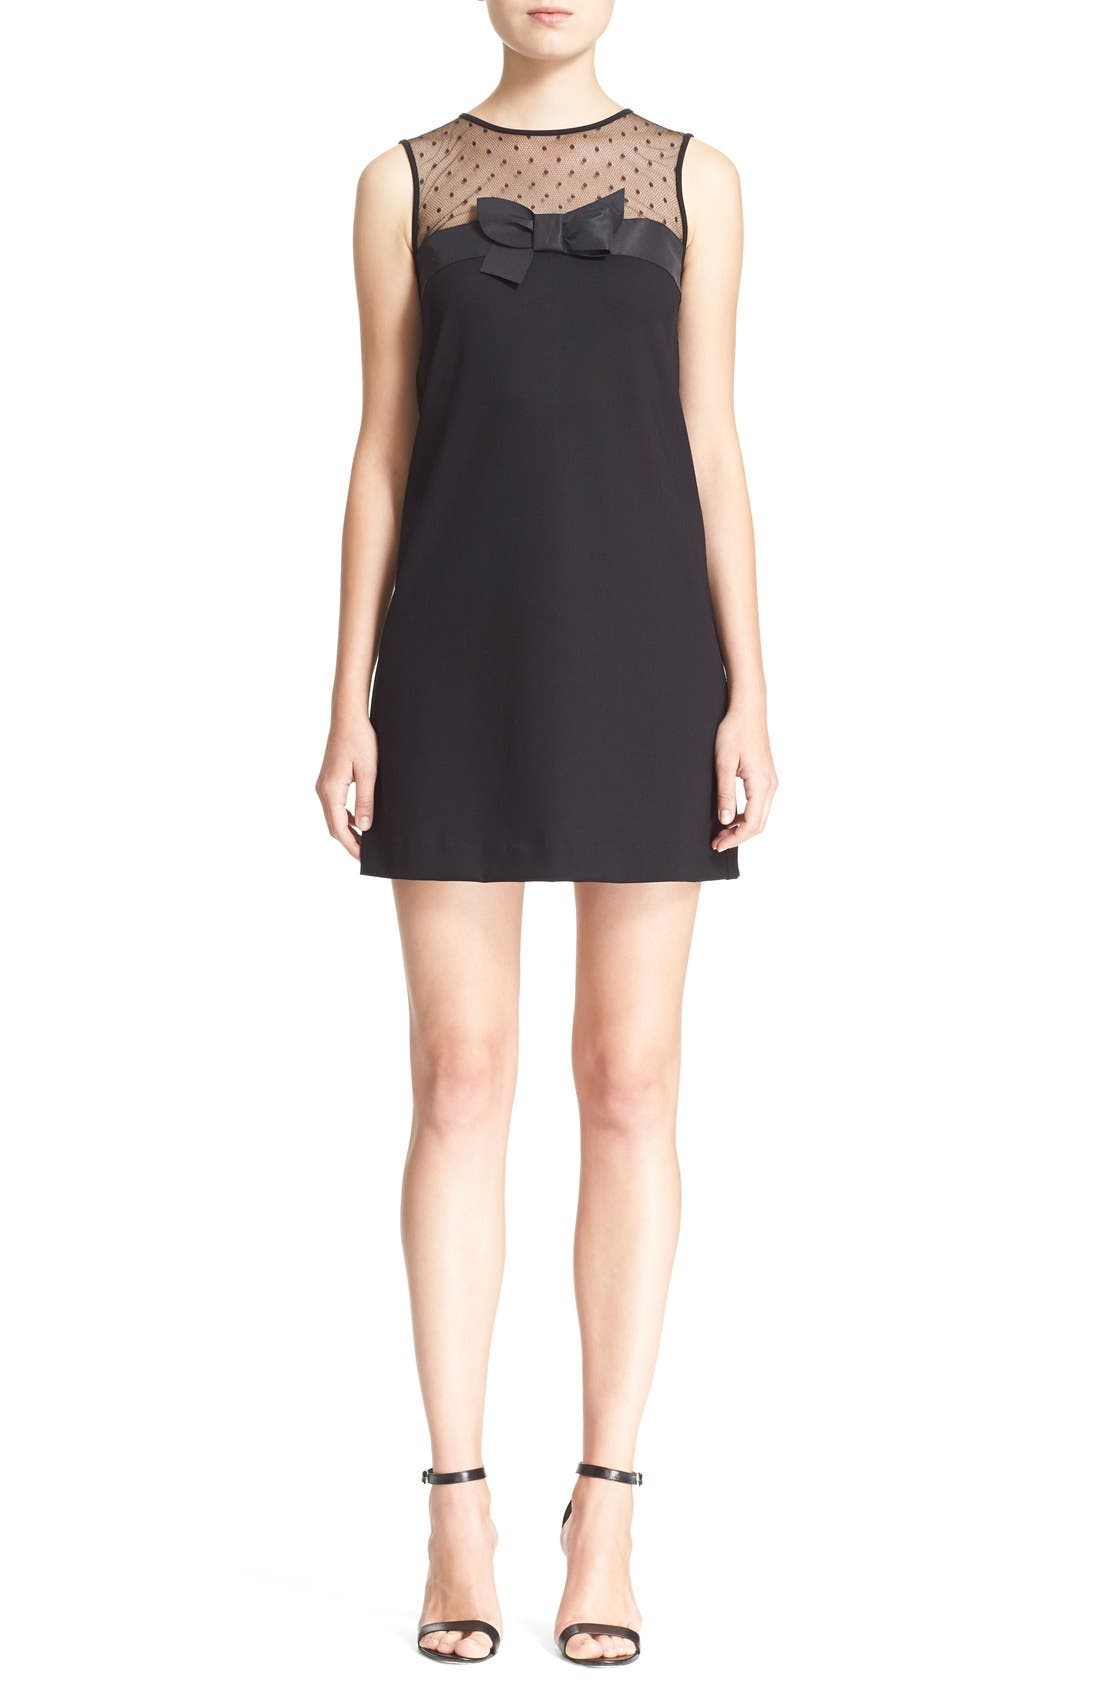 Alternate Image 1 Selected - RED Valentino Point d'Esprit Yoke Bow Dress